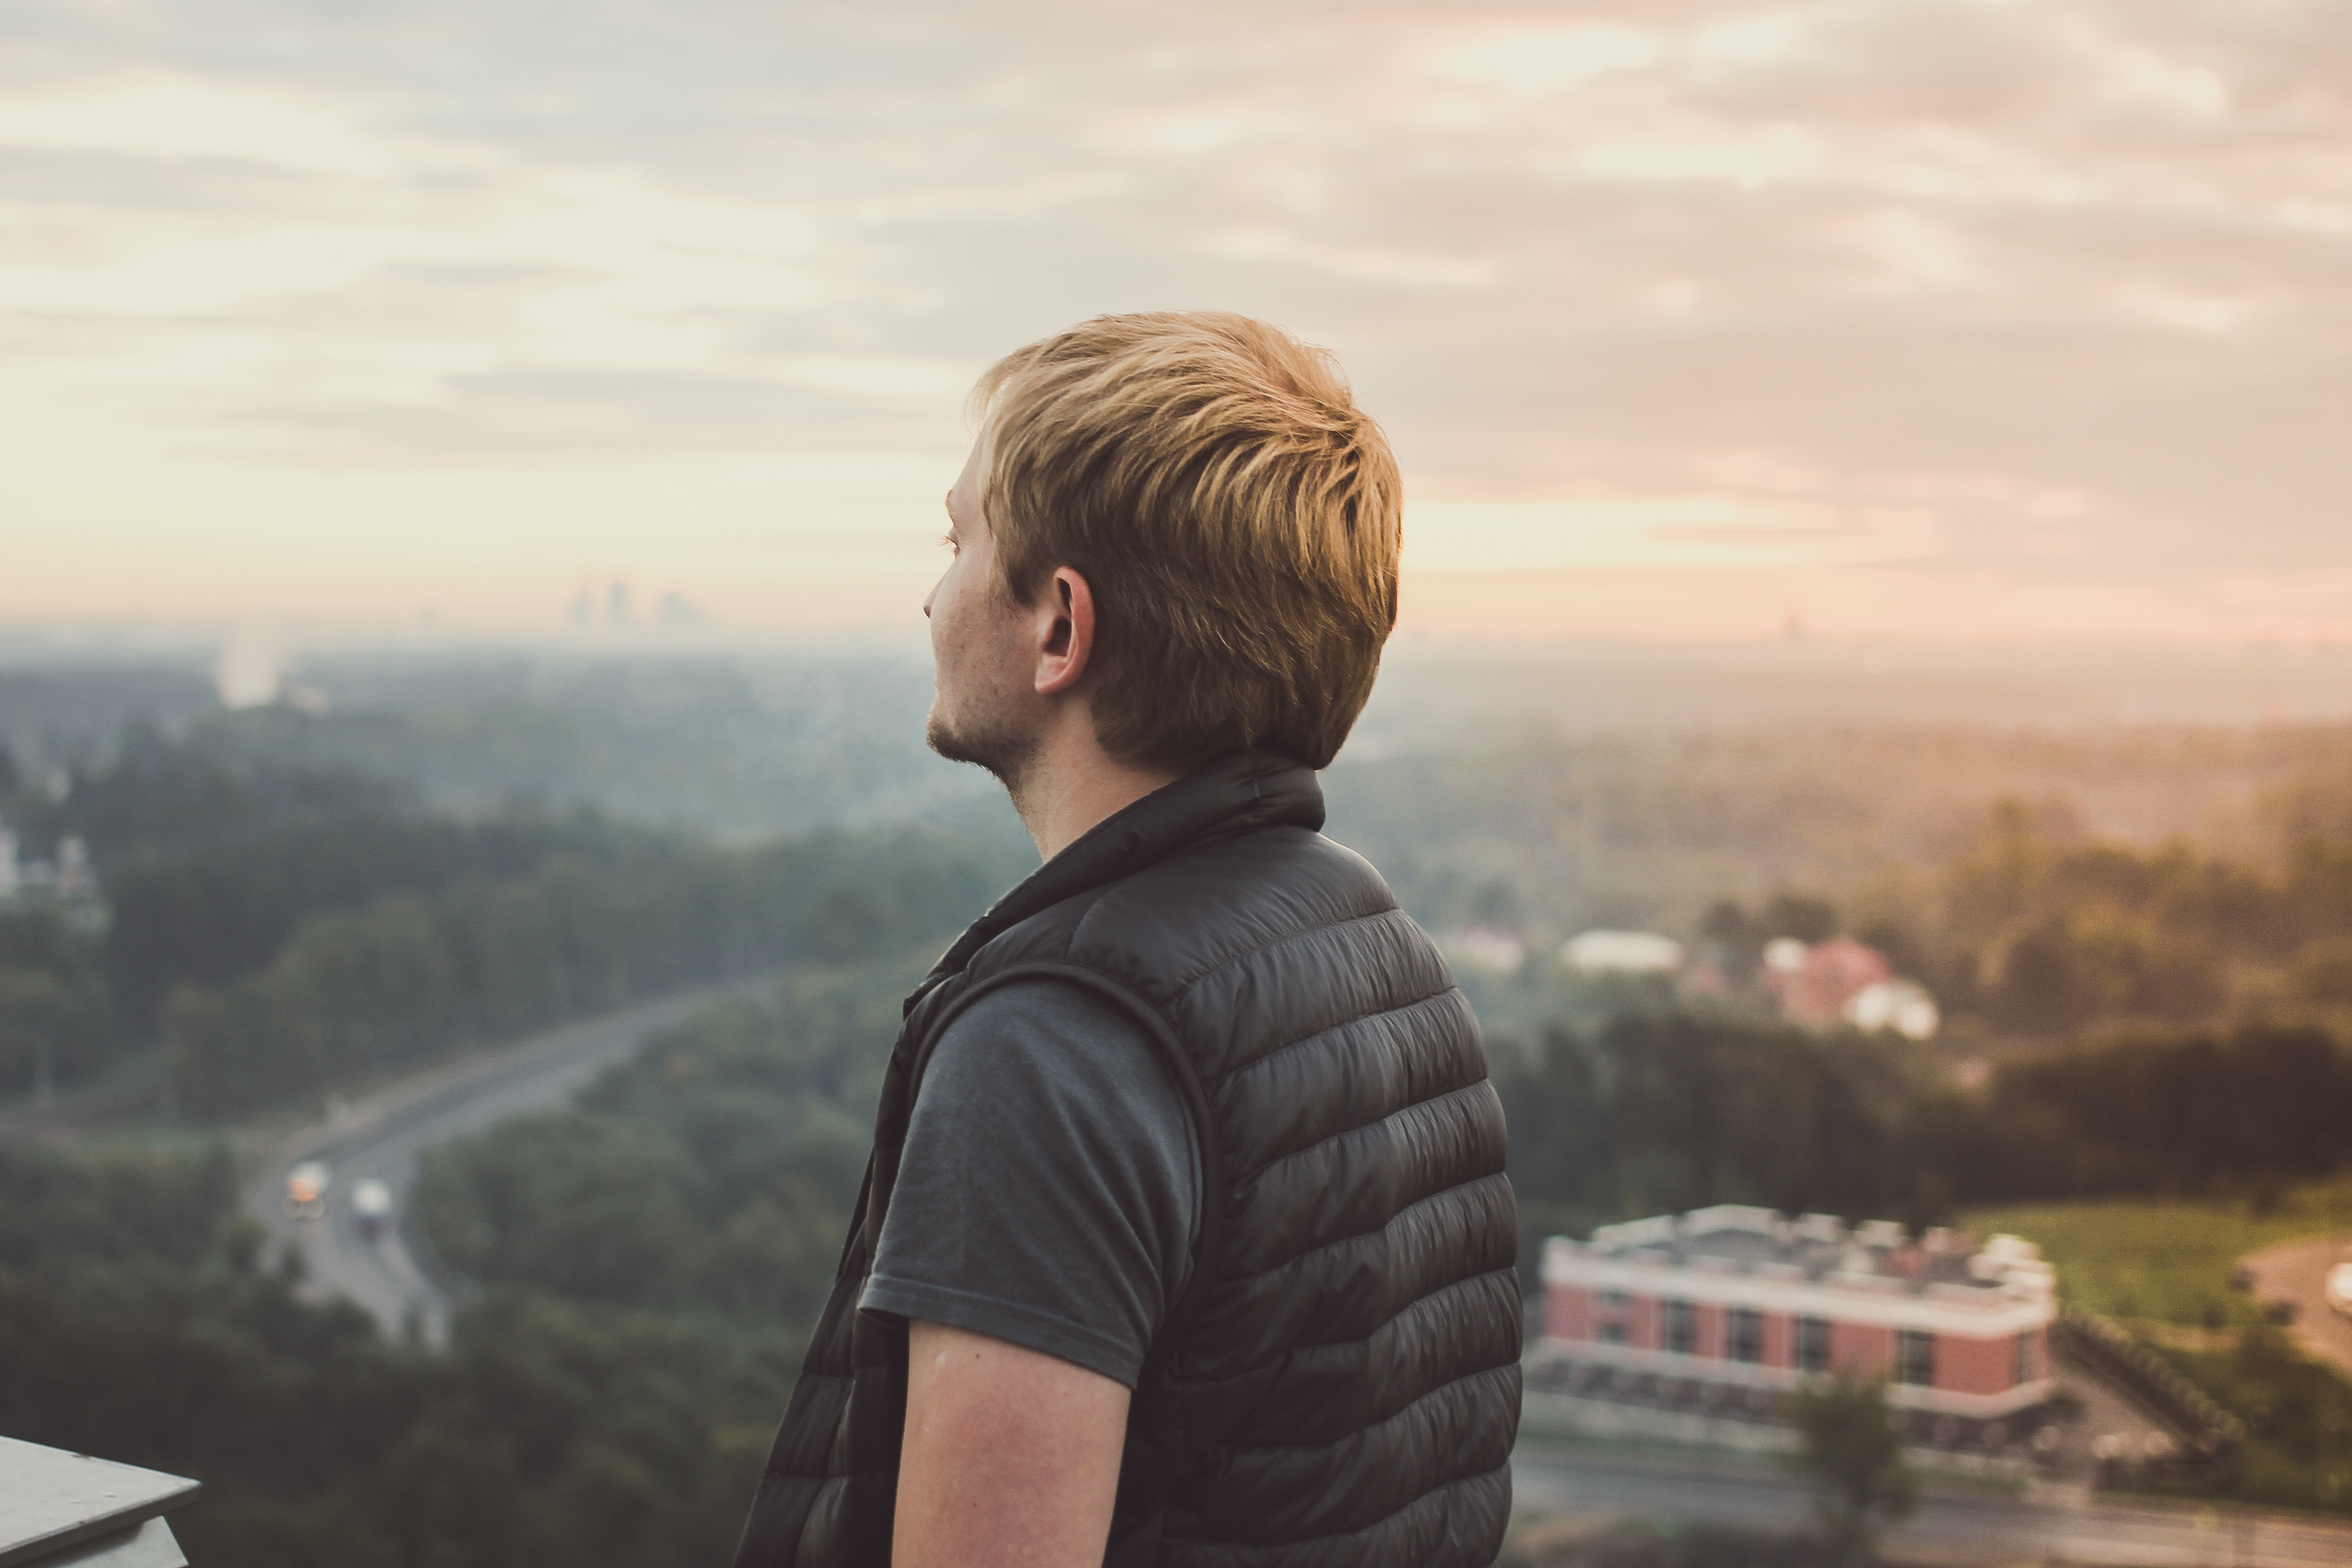 A man in a vest looking into the distance over a landscape of trees and buildings